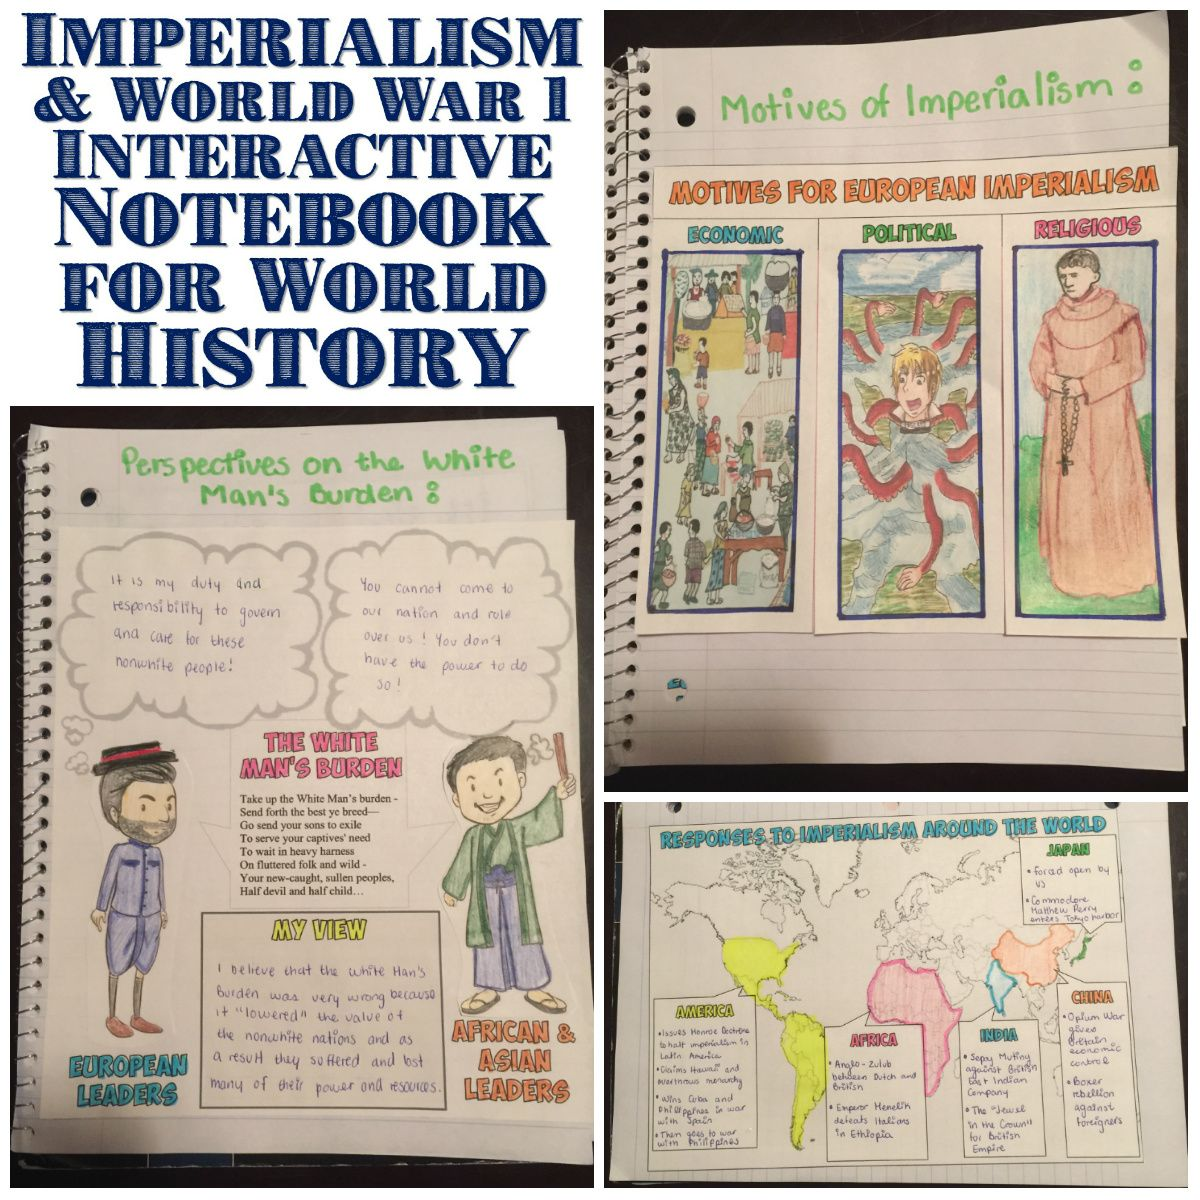 cold war map activity activities keys and war imperialism and world war 1 interactive notebook pages